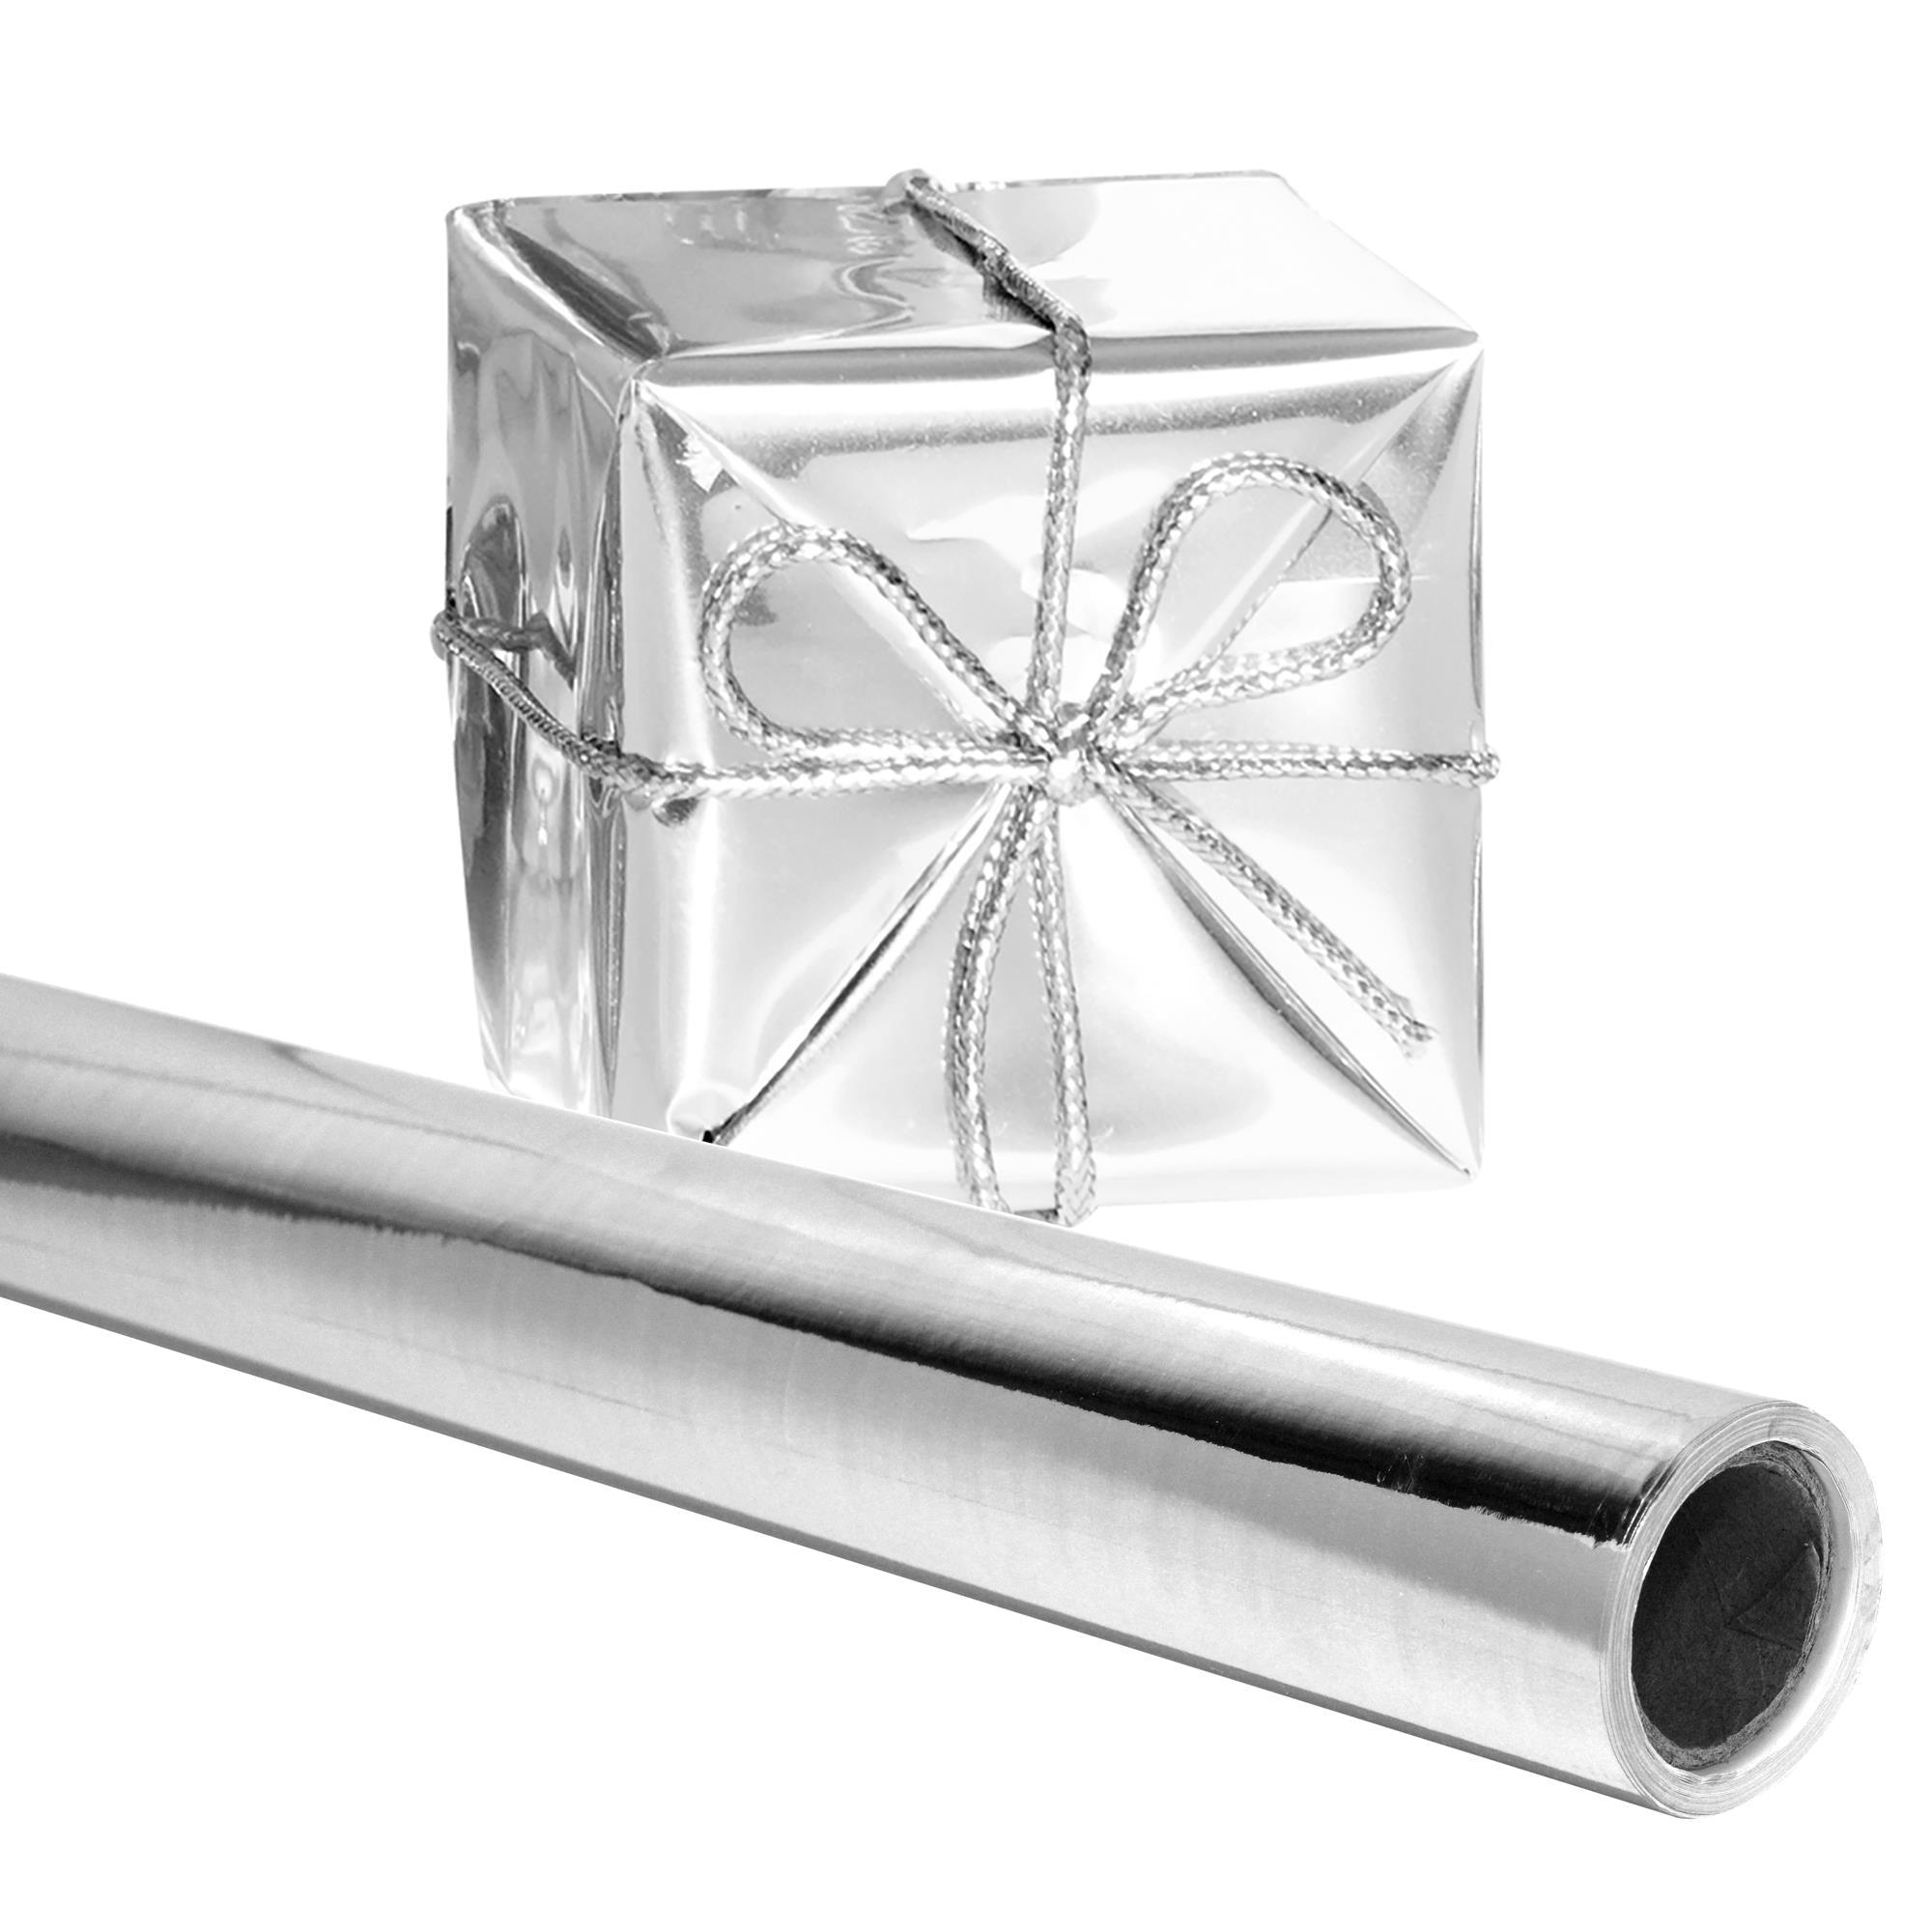 "Angel Crafts Gift Wrapping Paper 26"" x 25 Ft Roll, SILVER - Thick Shiny Metallic Deco Wrap Foil for Presents, Origami, Weddings, Embossing"